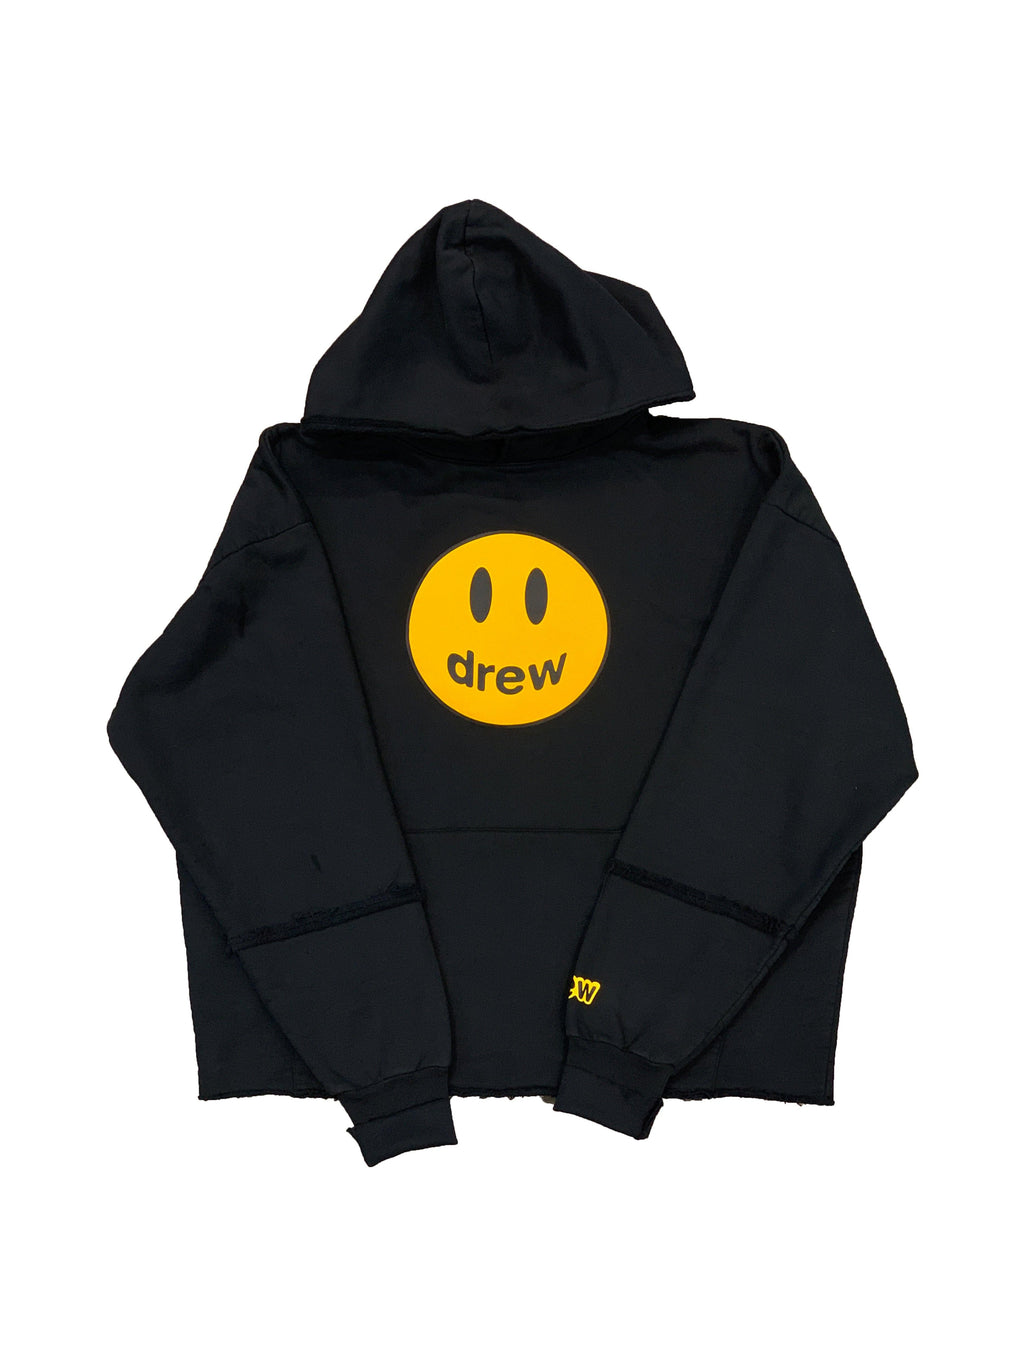 Drew House Deconstructed Mascot Hoodie Black